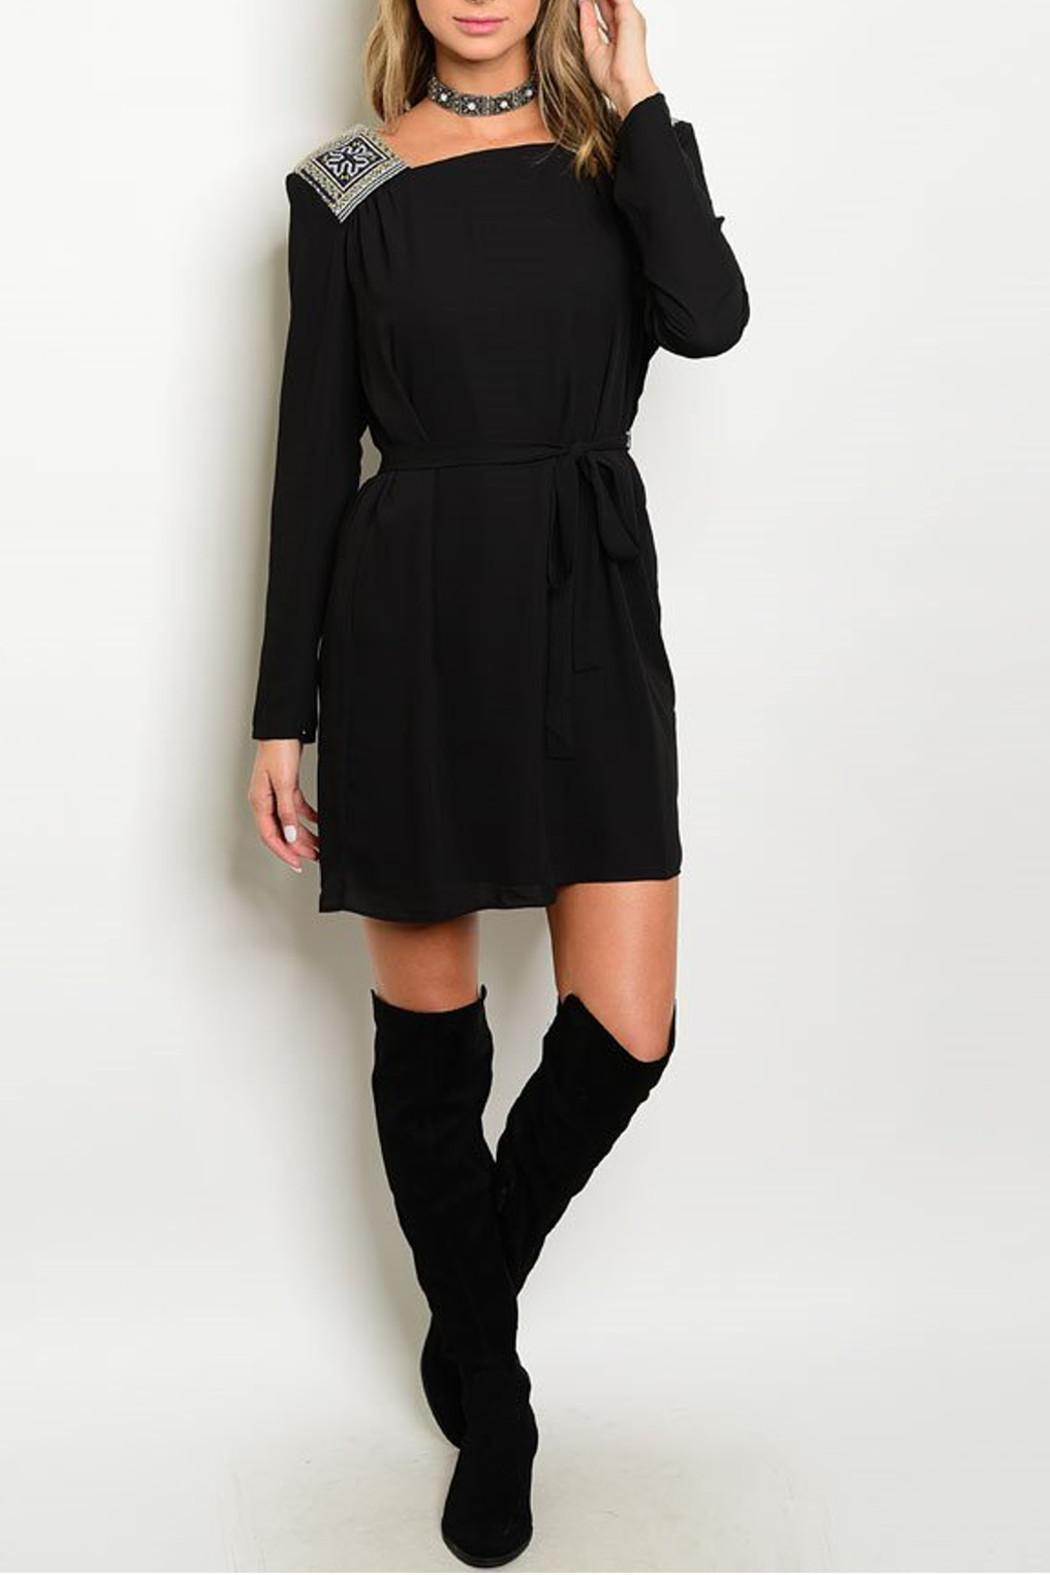 Esley Collection Embroidered Black Dress - Main Image